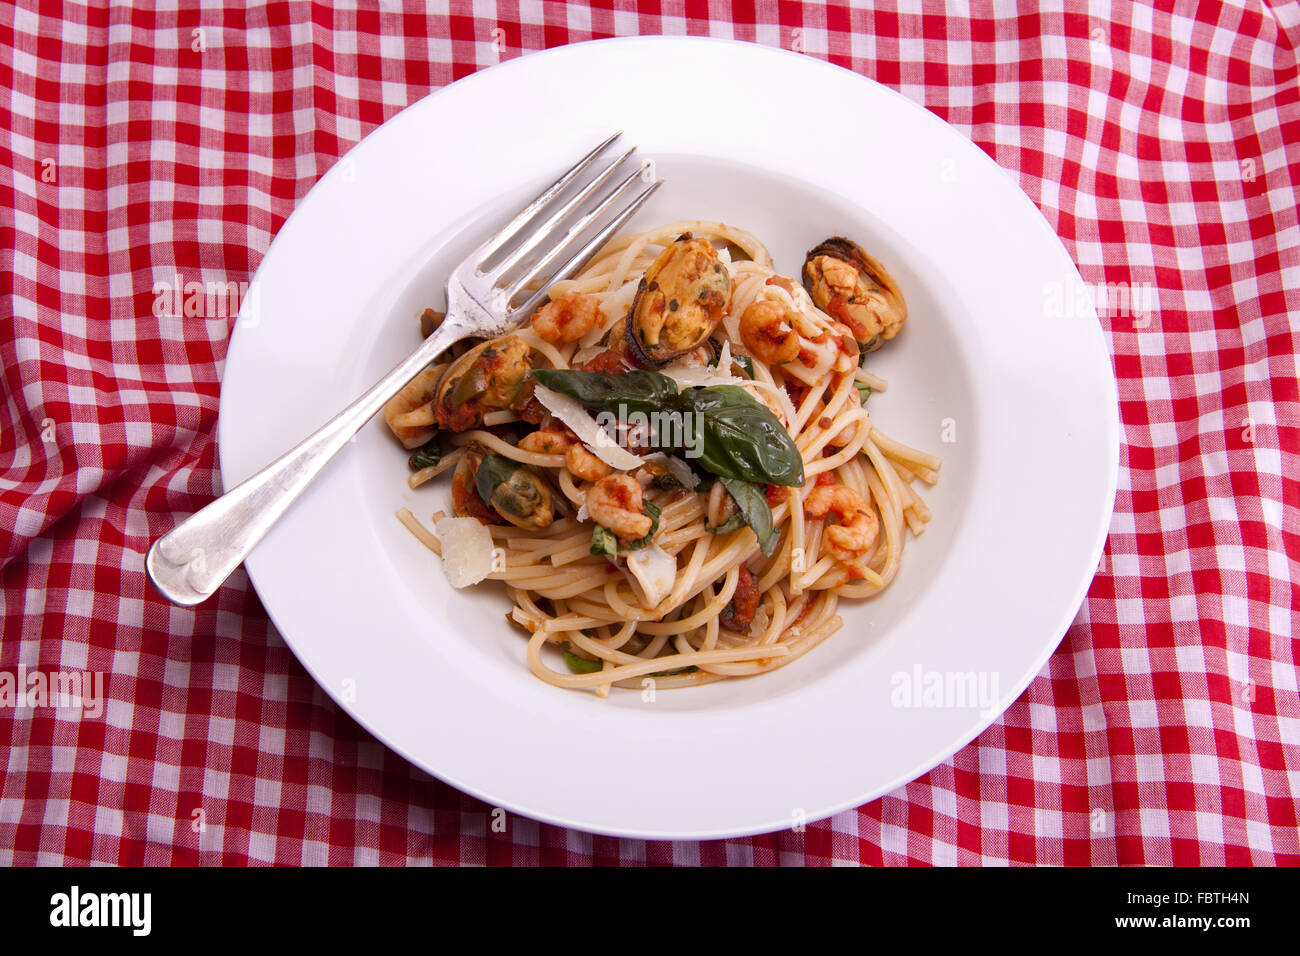 Spaghetti with a tomato and seafood souse. - Stock Image